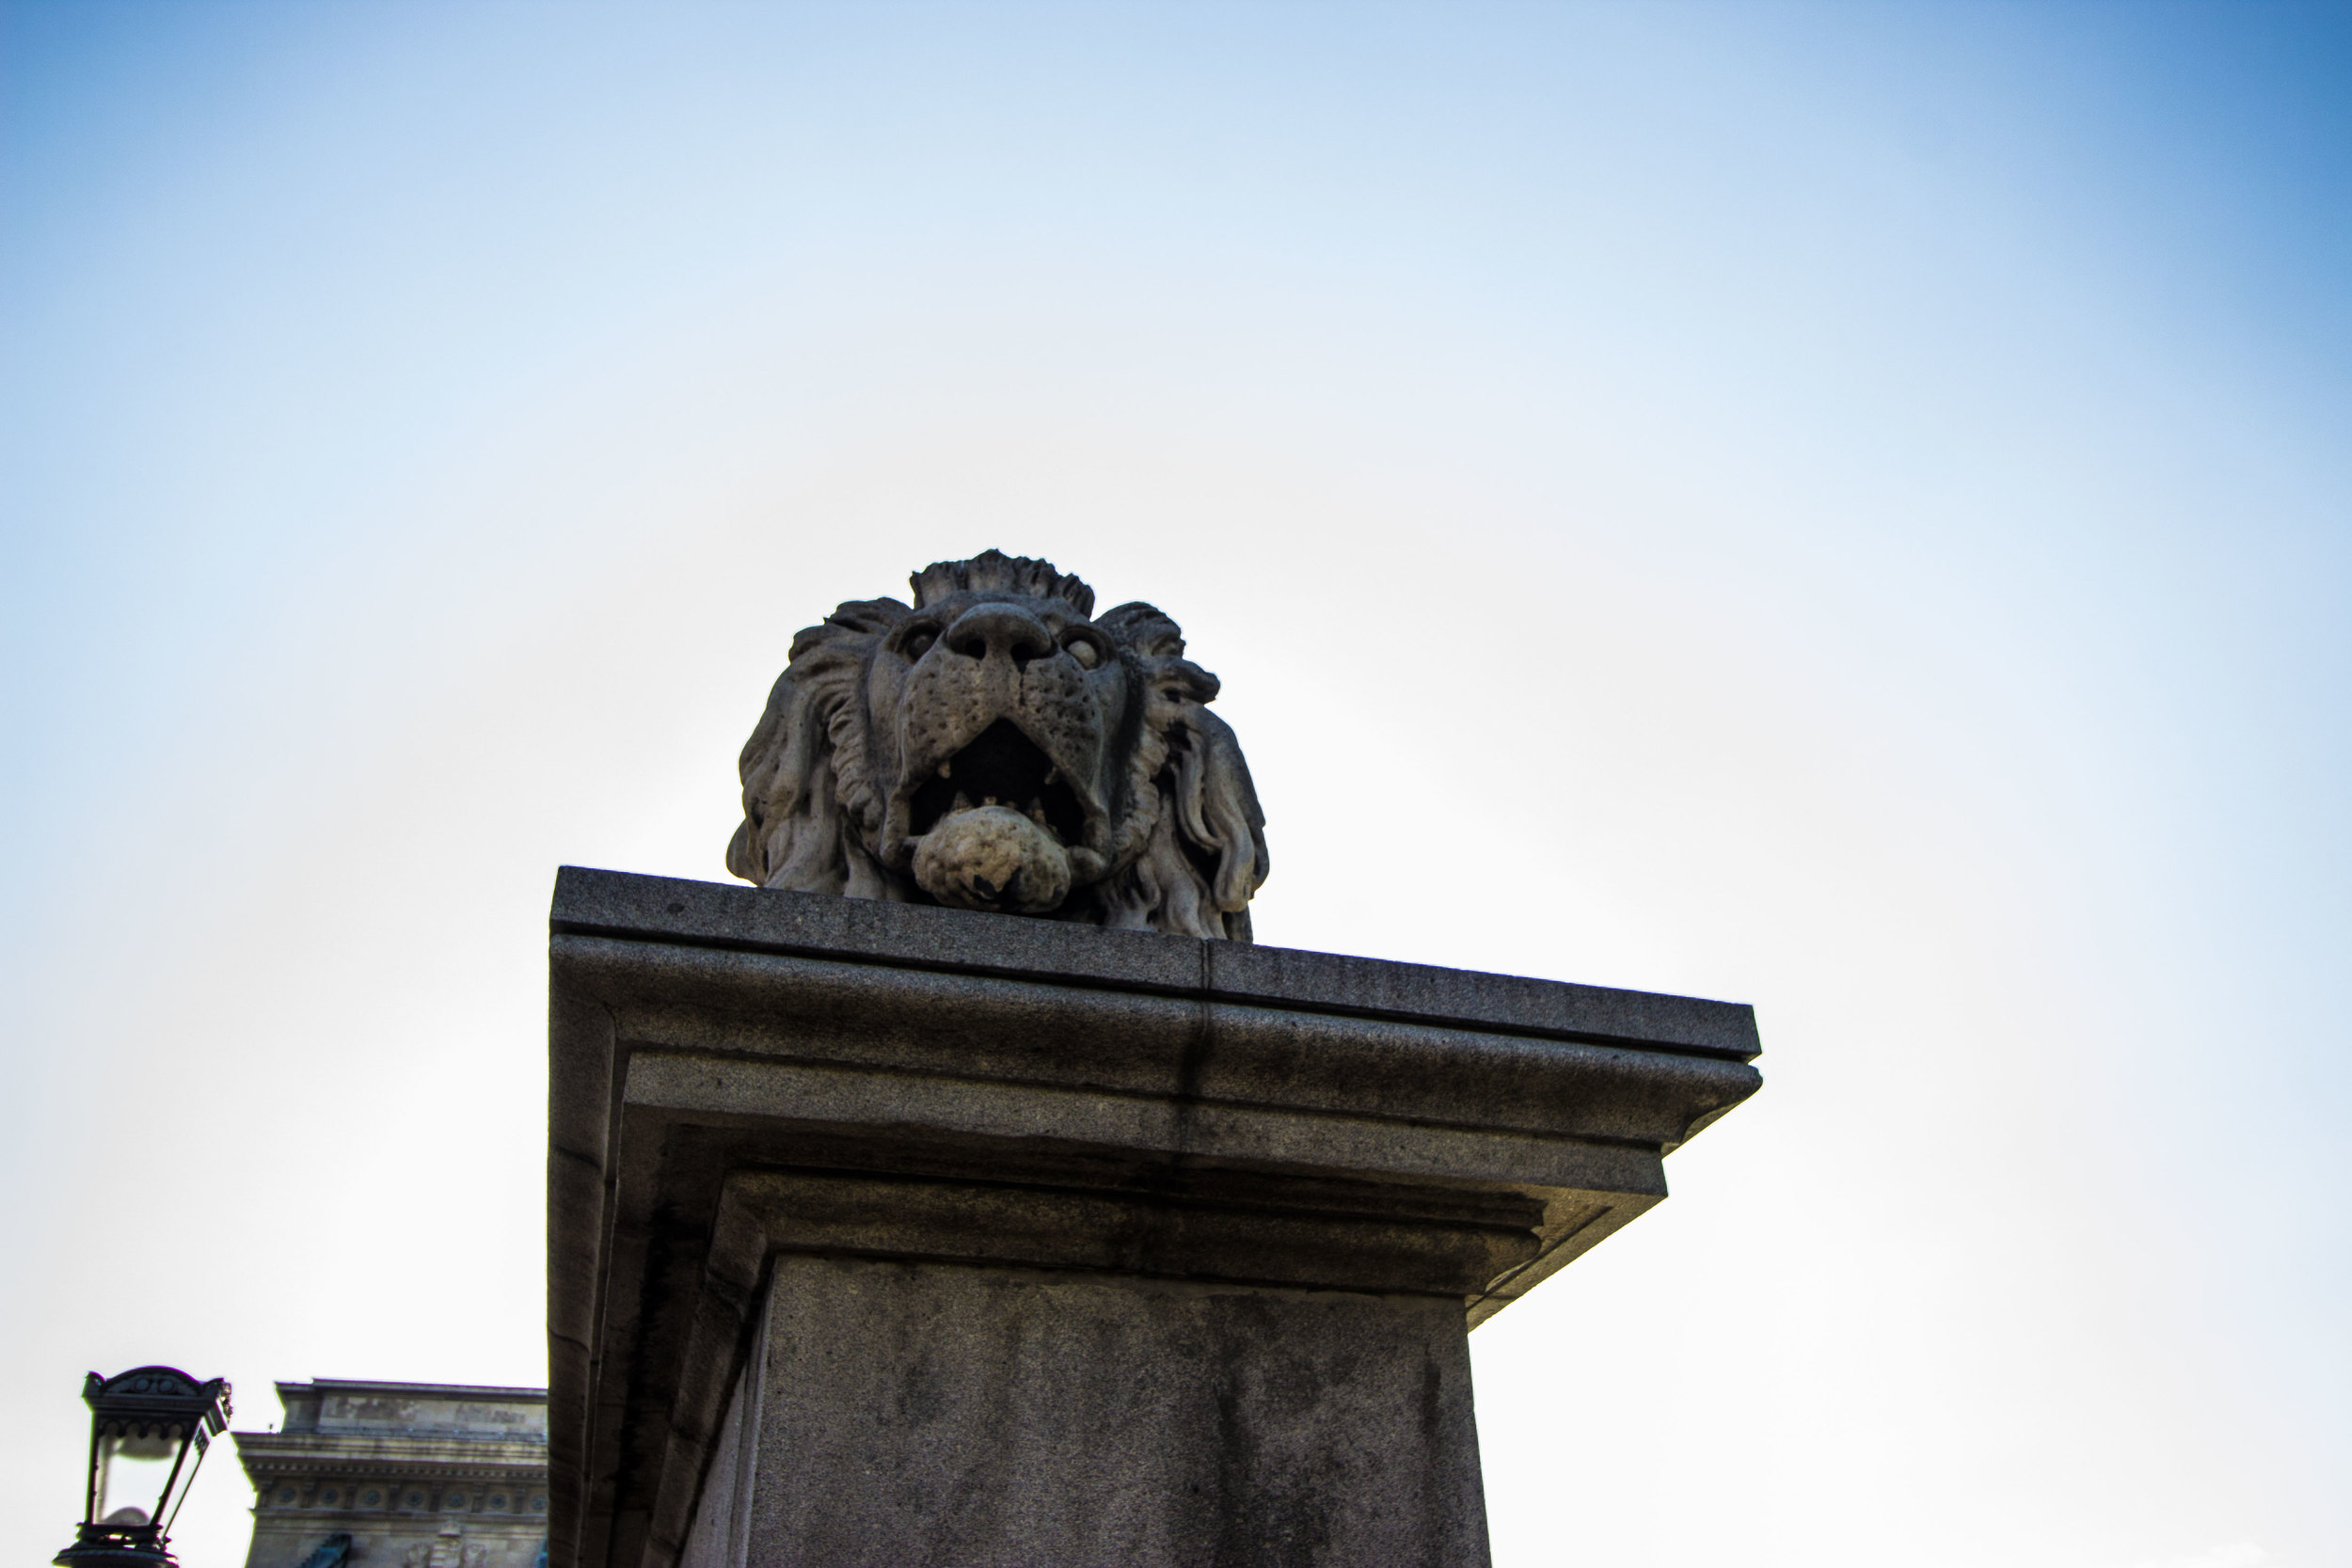 Lions guard the Chain Bridge at both sides of the river.